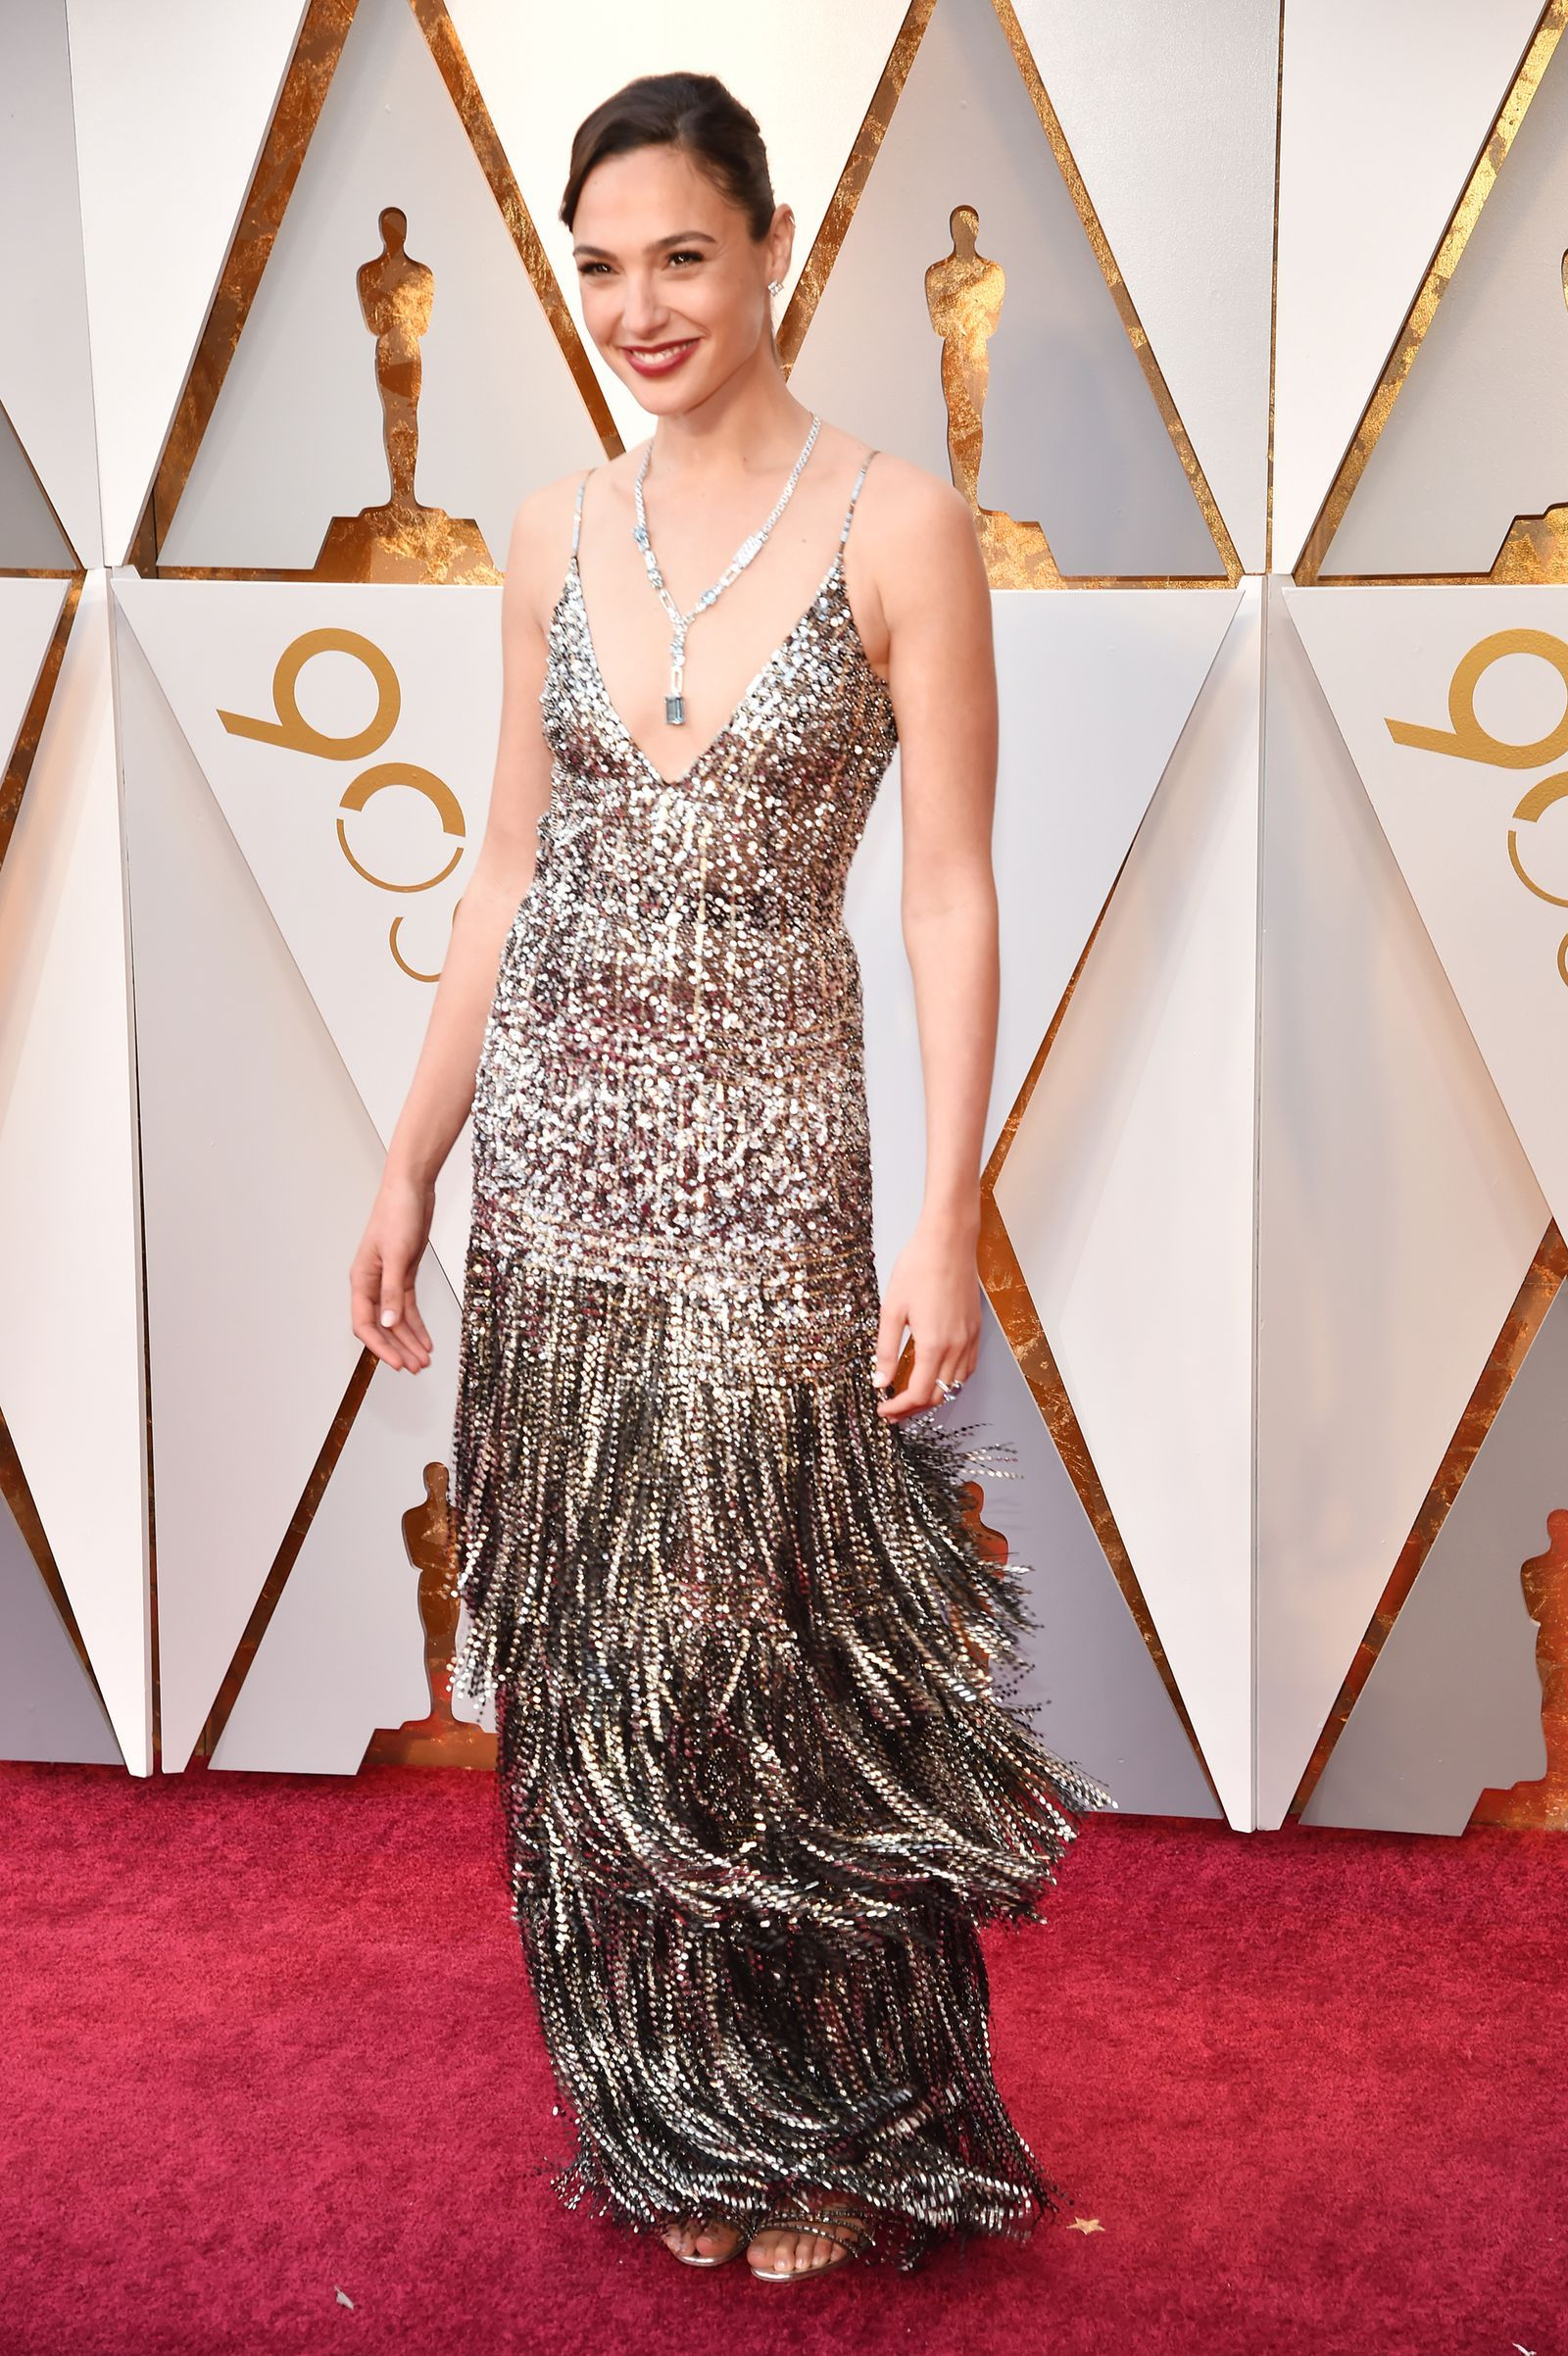 Oscars 2018 Roter Teppich Gal Gadot Is Dripping In Diamonds At The 2018 Oscars Gal Gadot